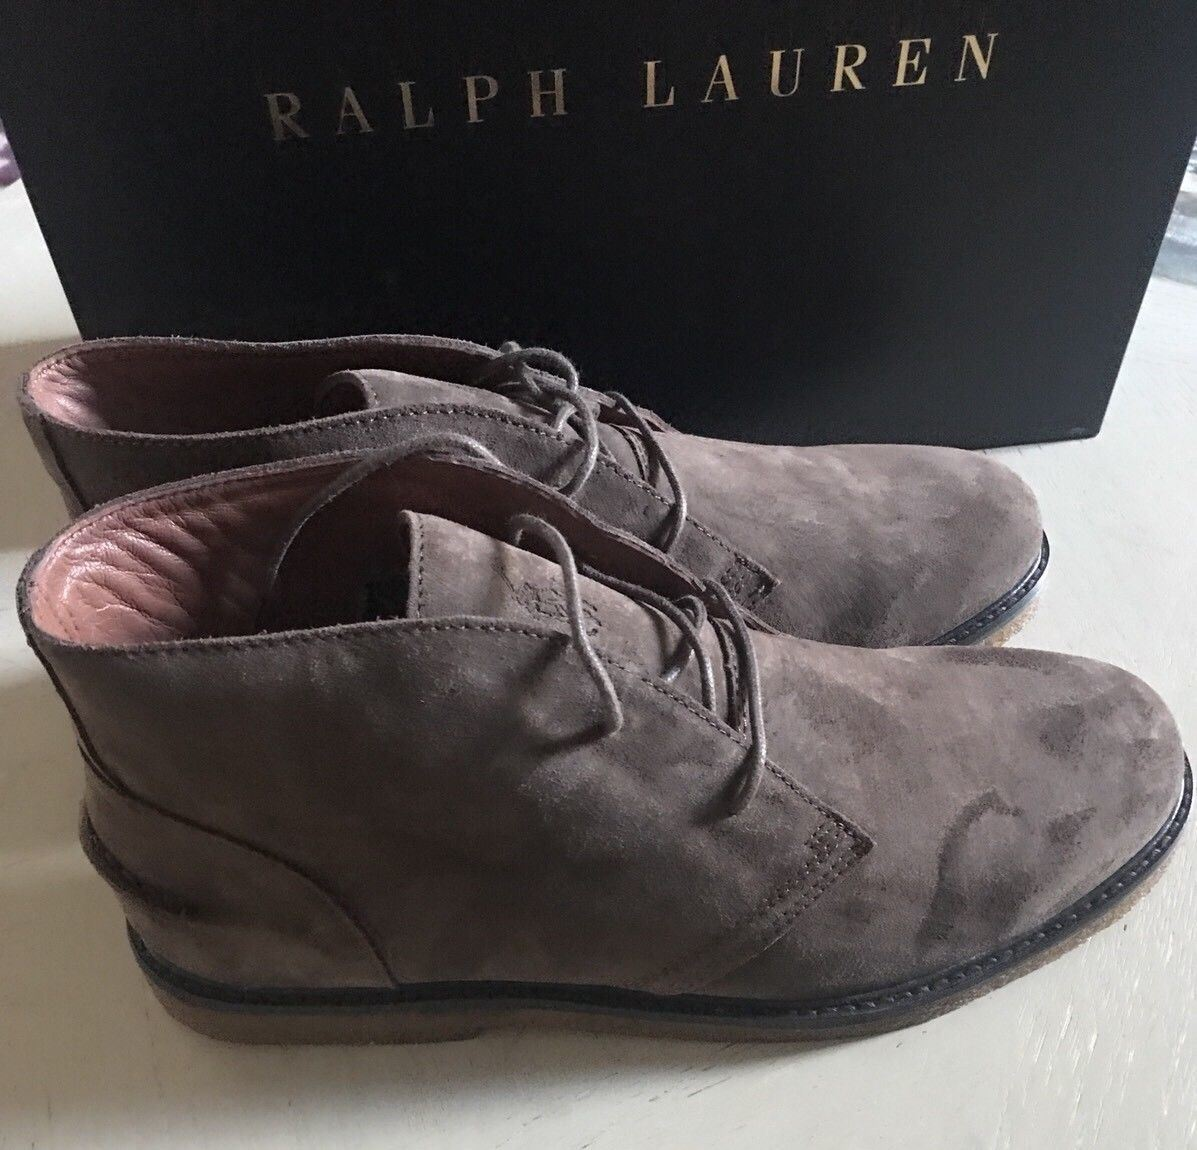 New $795 Polo Ralph Lauren Mens Suede Boots Shoes Dark Brown 10 US - BAYSUPERSTORE